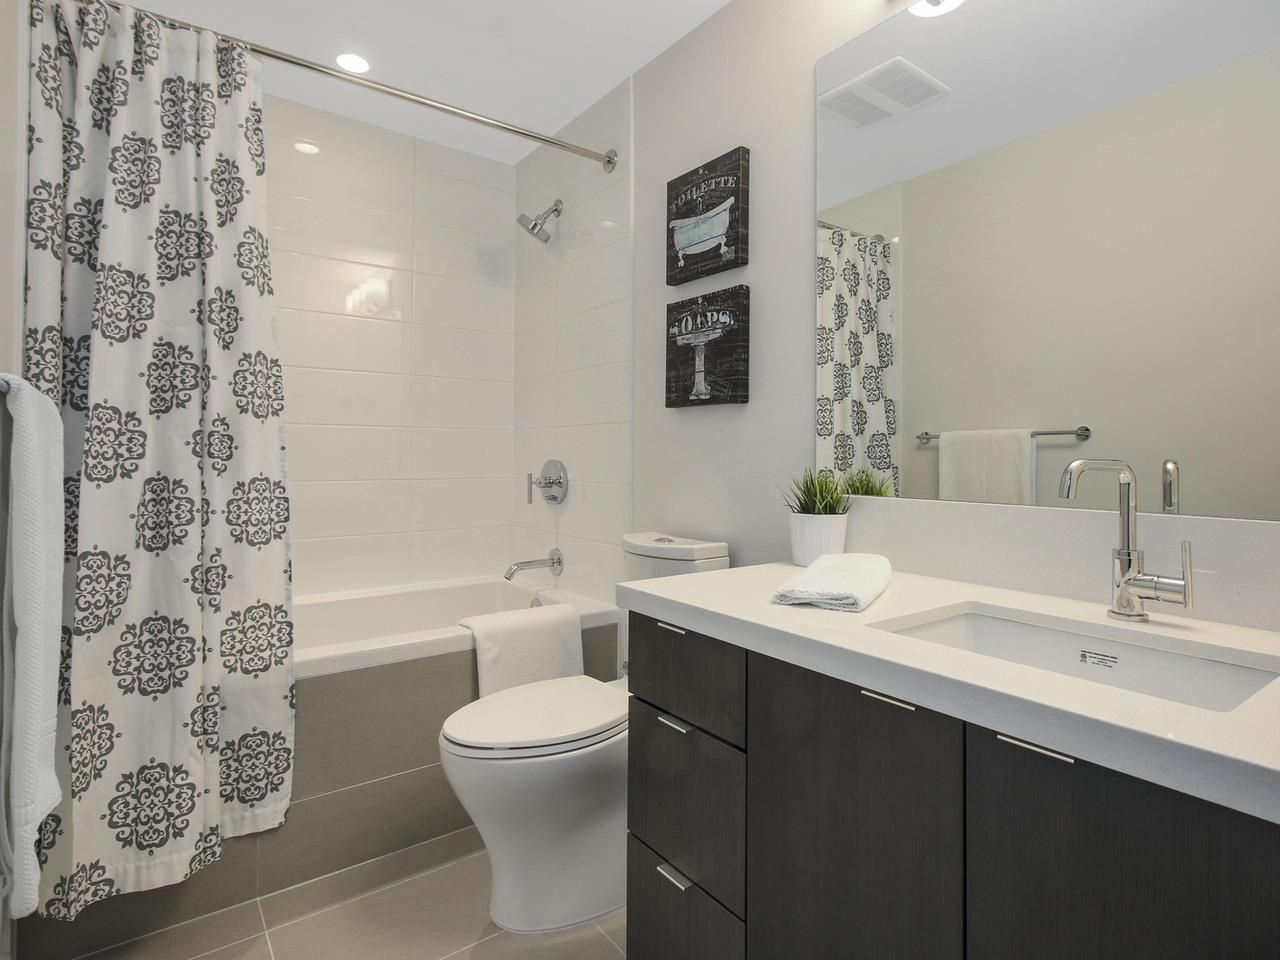 """Photo 8: Photos: 604 417 GREAT NORTHERN Way in Vancouver: Mount Pleasant VE Condo for sale in """"CANVAS"""" (Vancouver East)  : MLS®# R2118078"""